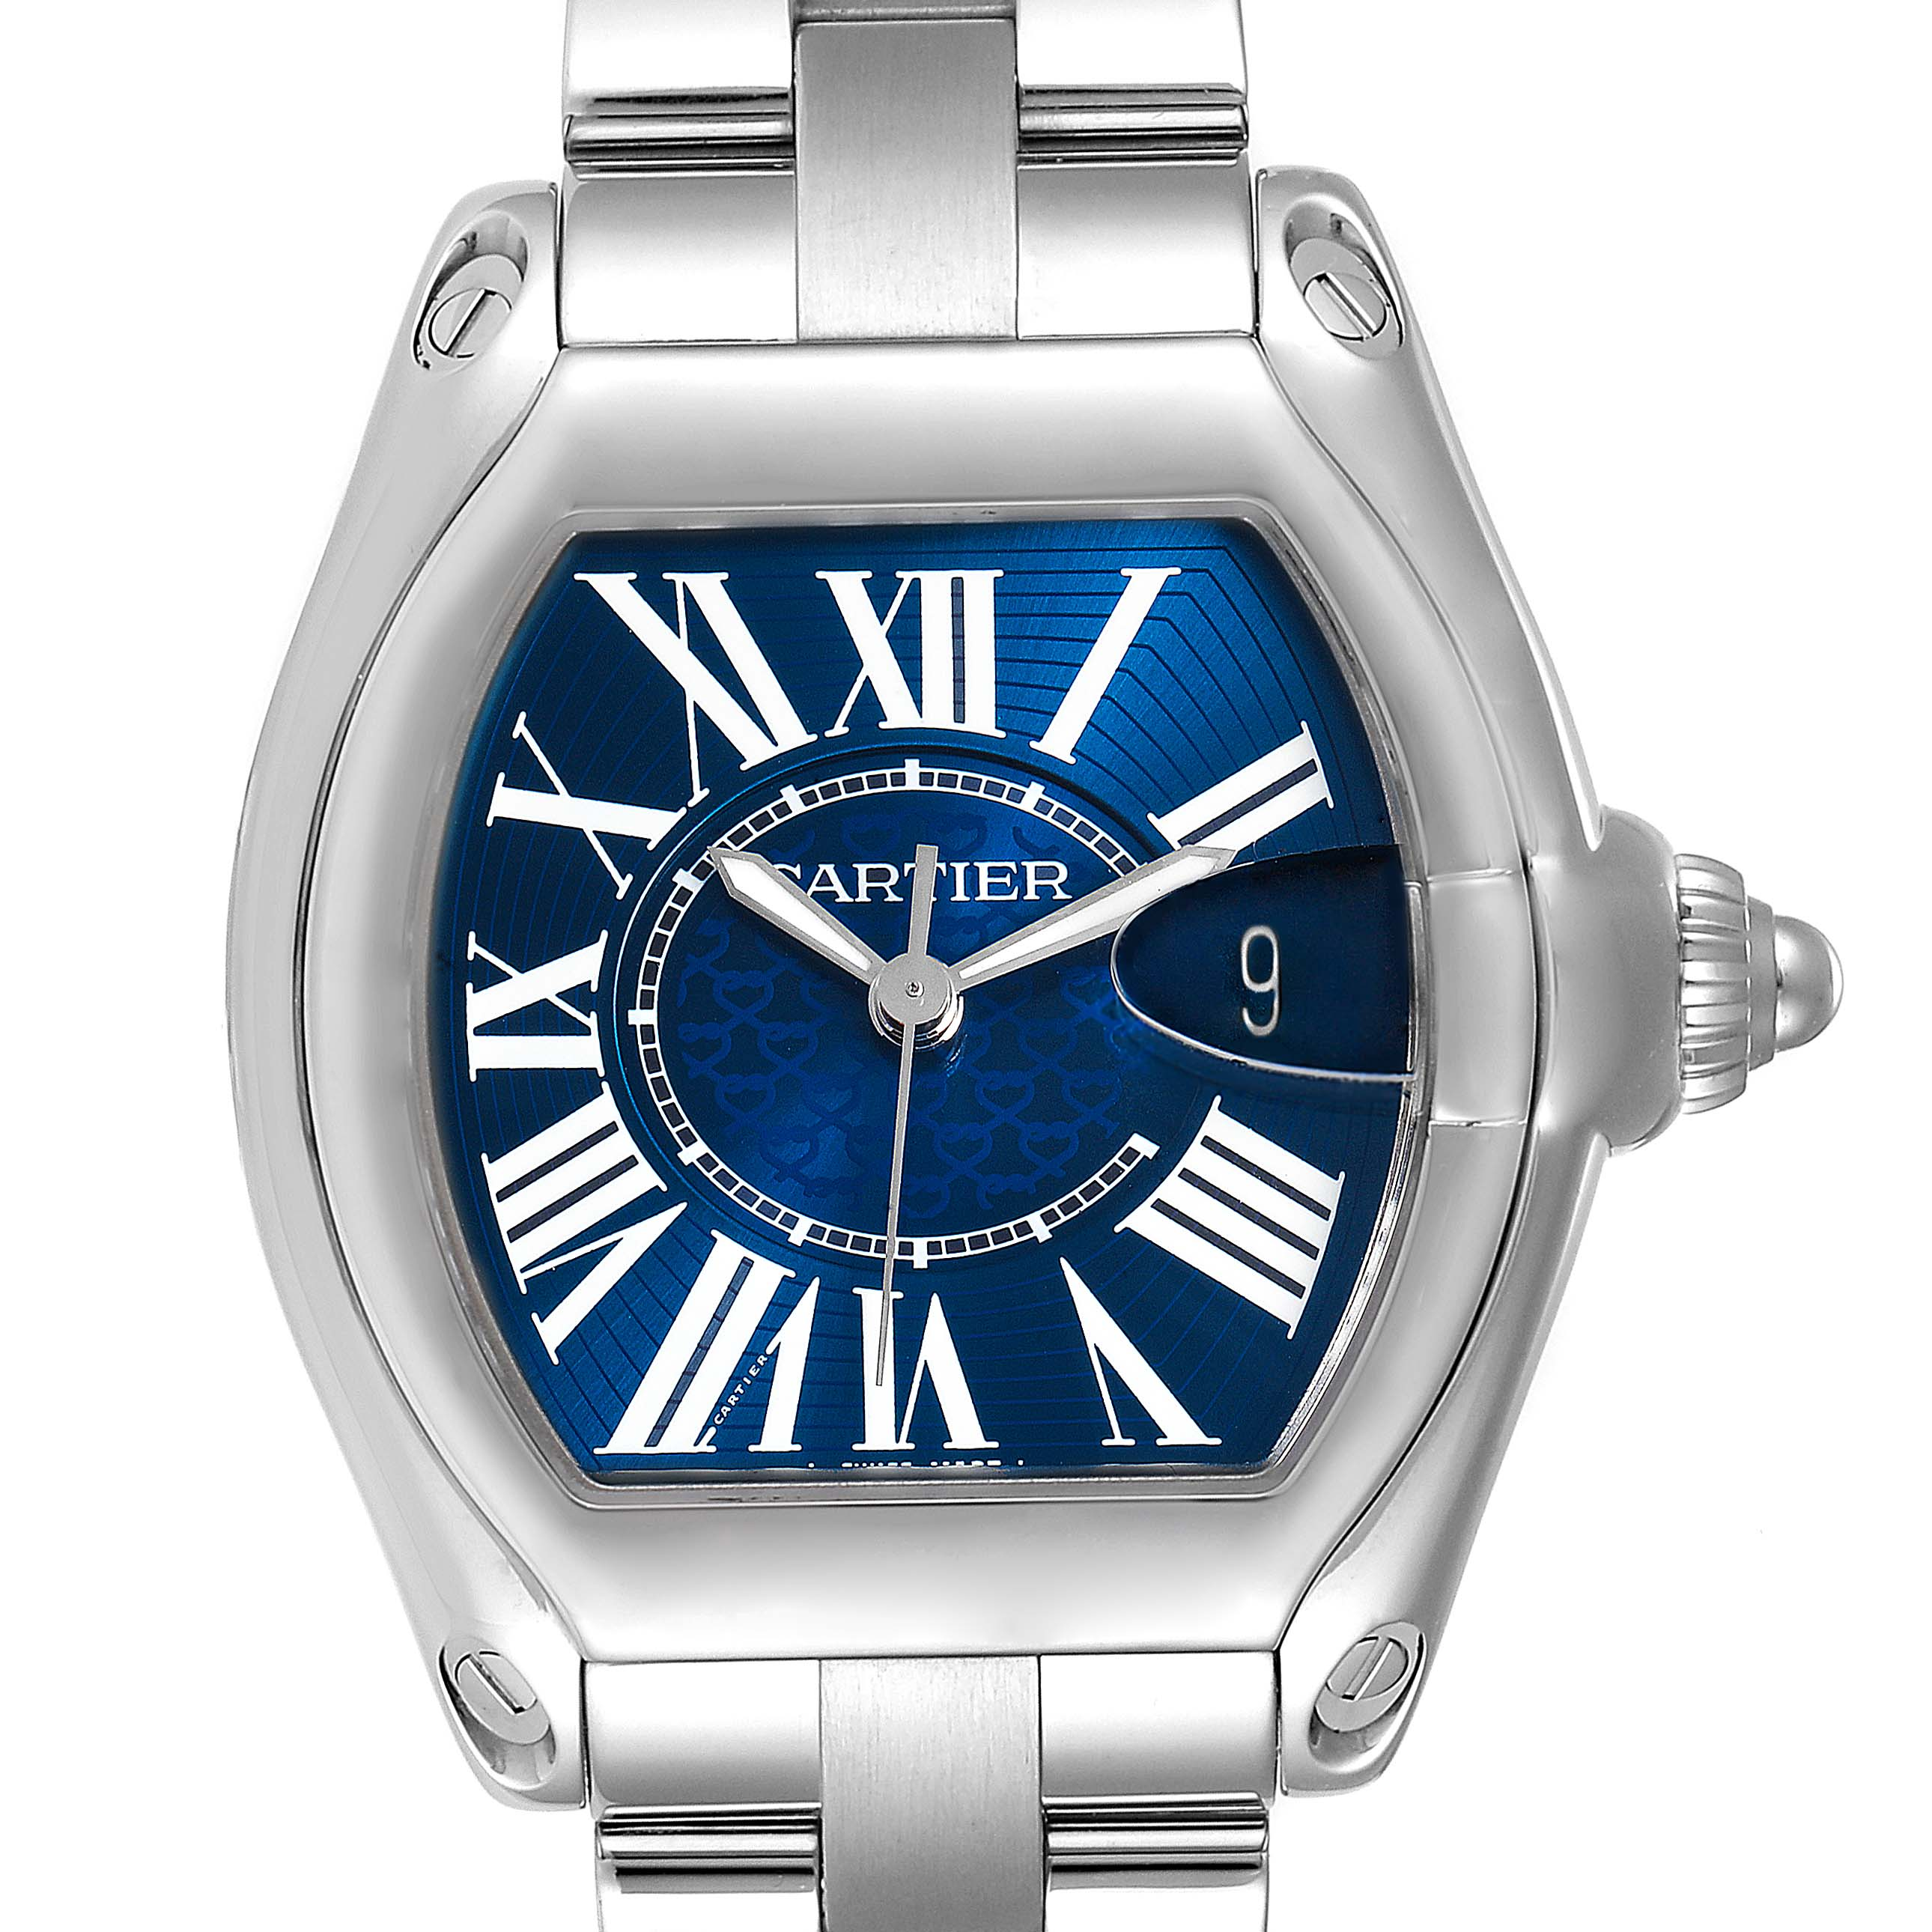 Cartier Roadster XL 100th Anniversary Blue Dial Mens Watch W6206012